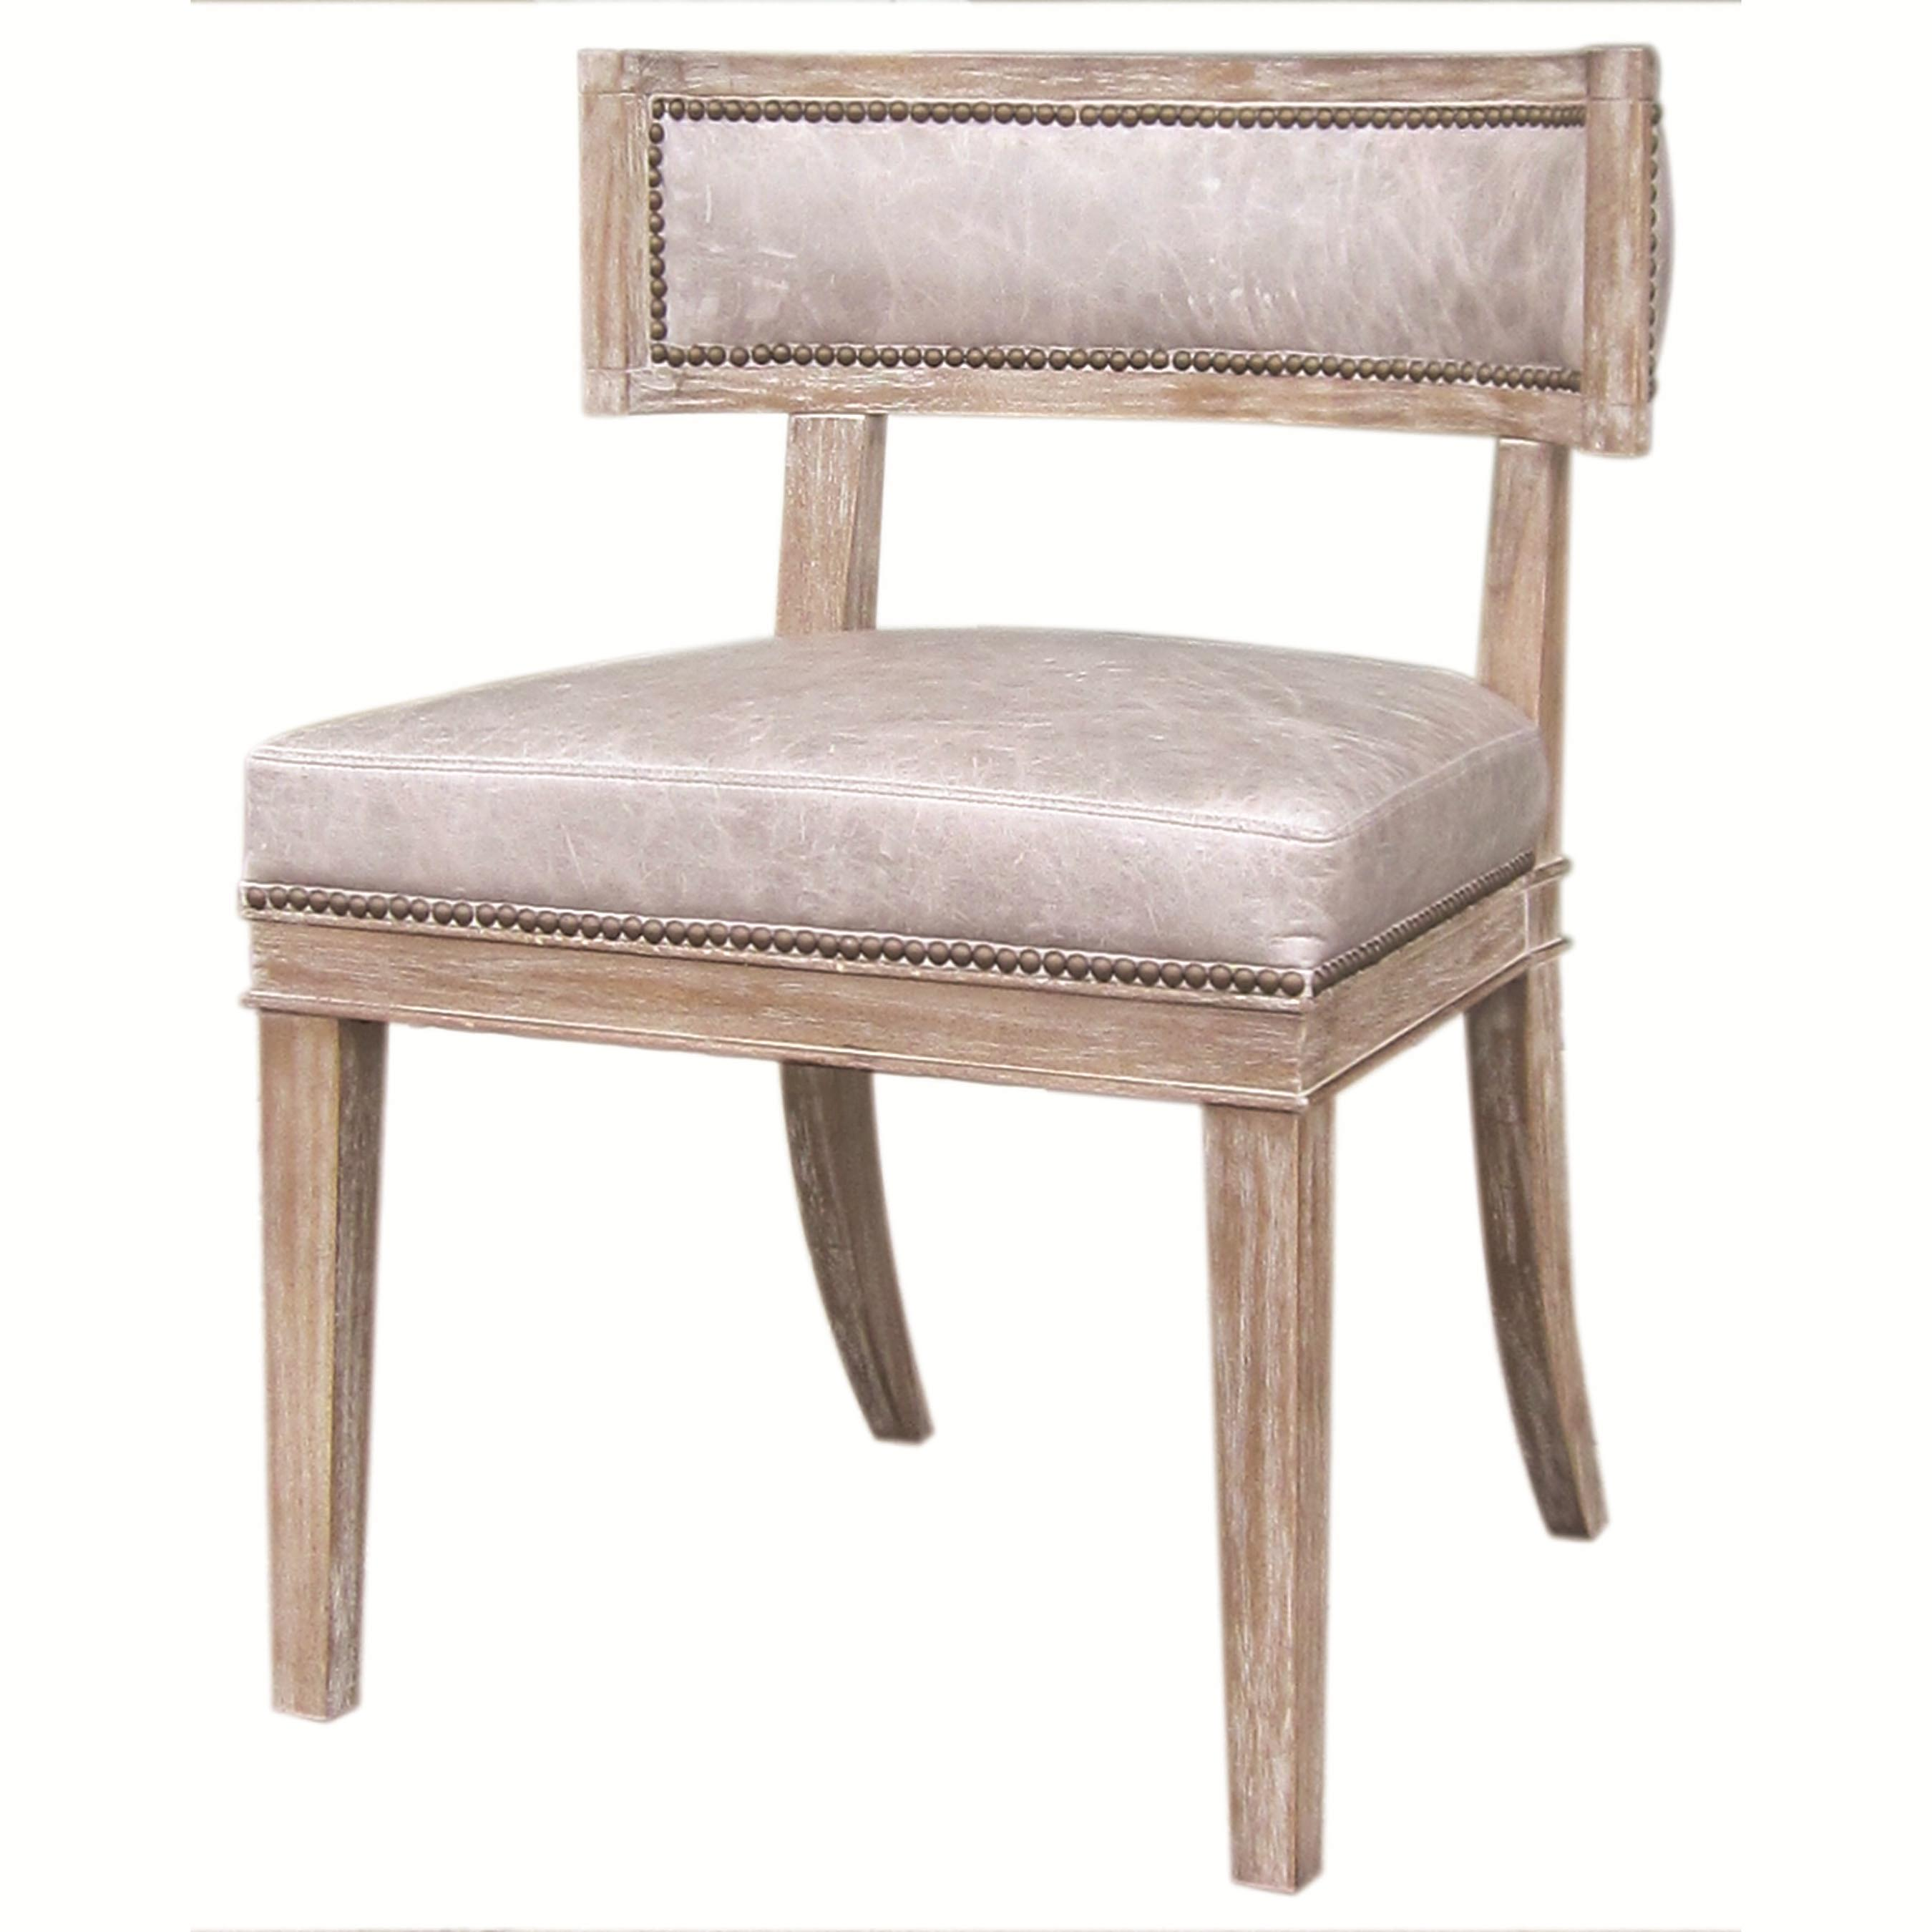 Four Hands Kensington Carter Dining Chair - Item Number: CKEN-41Z-250